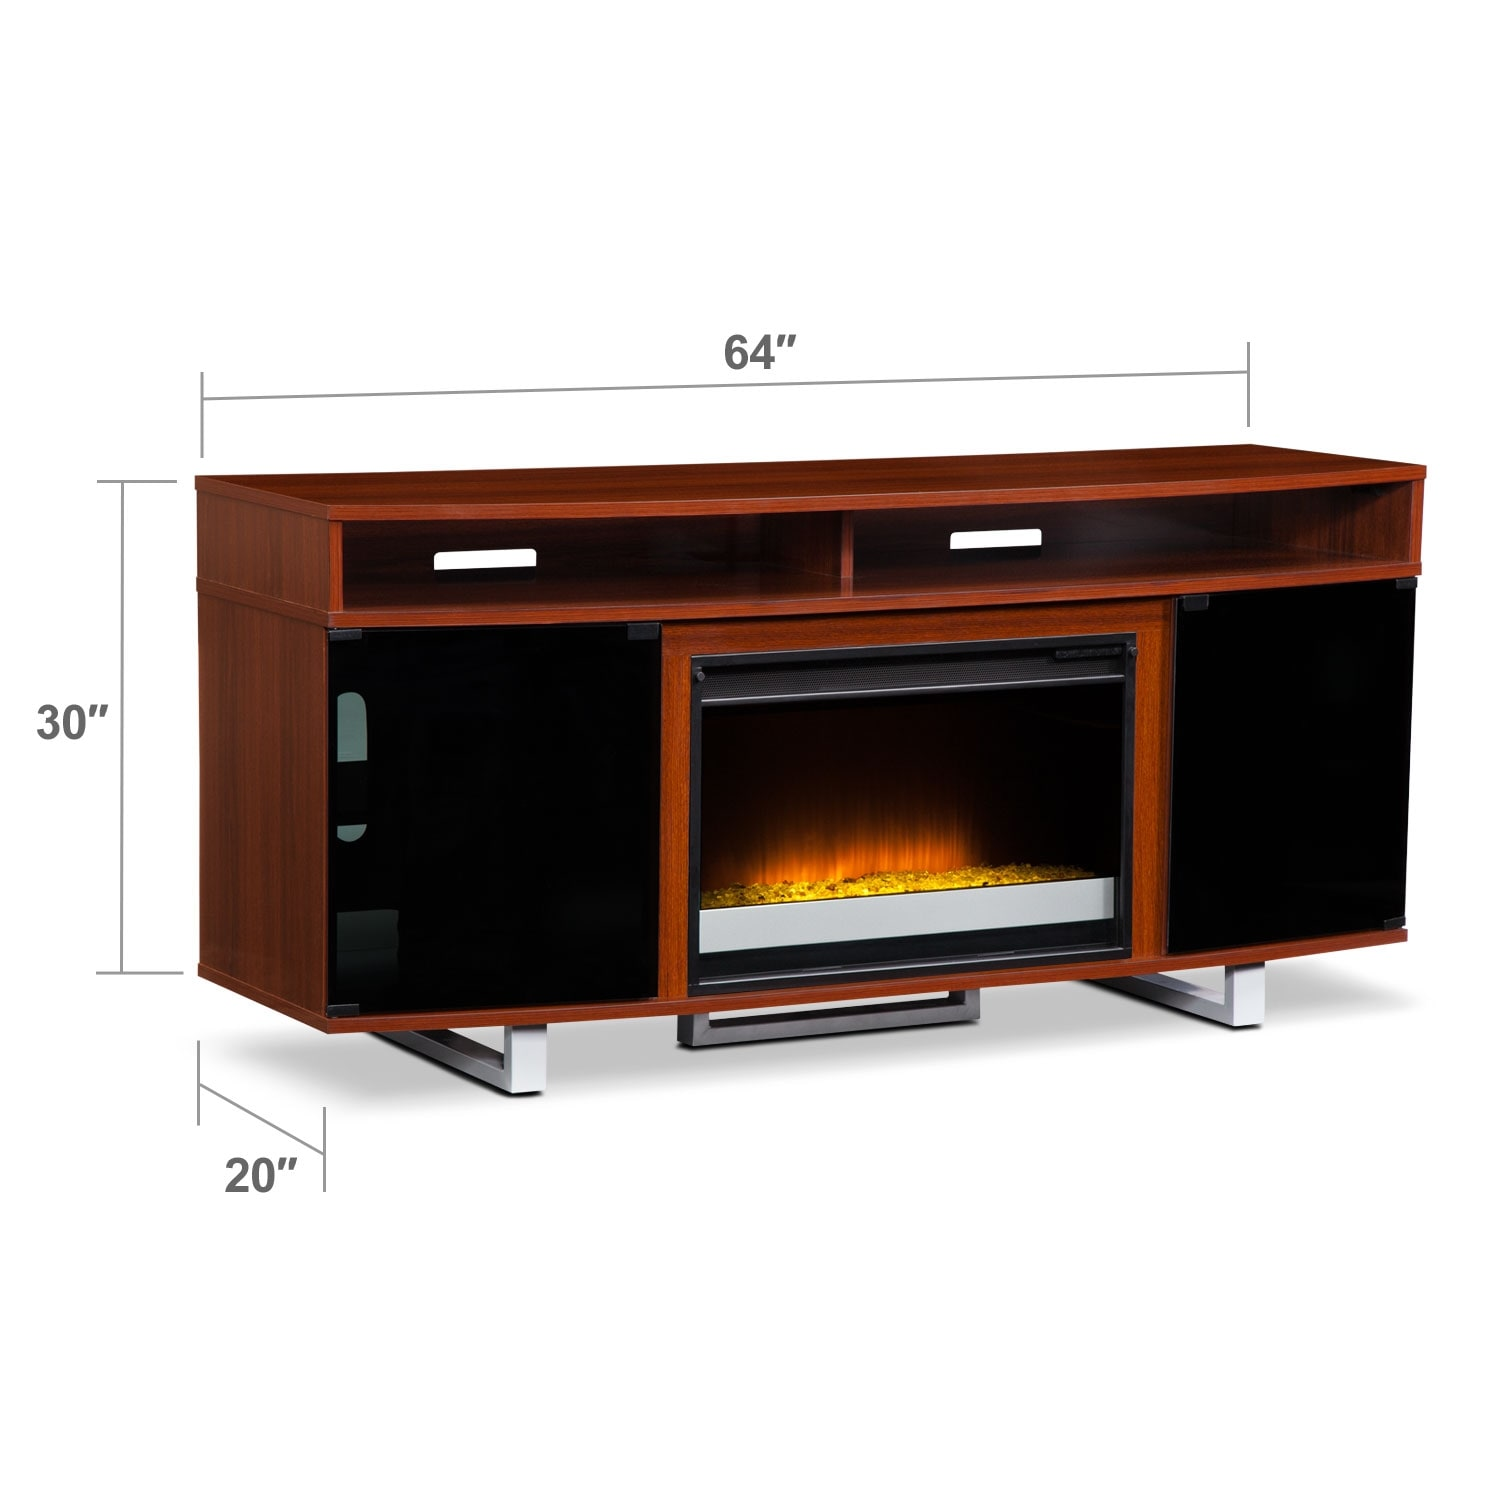 pacer 64 contemporary fireplace tv stand cherry